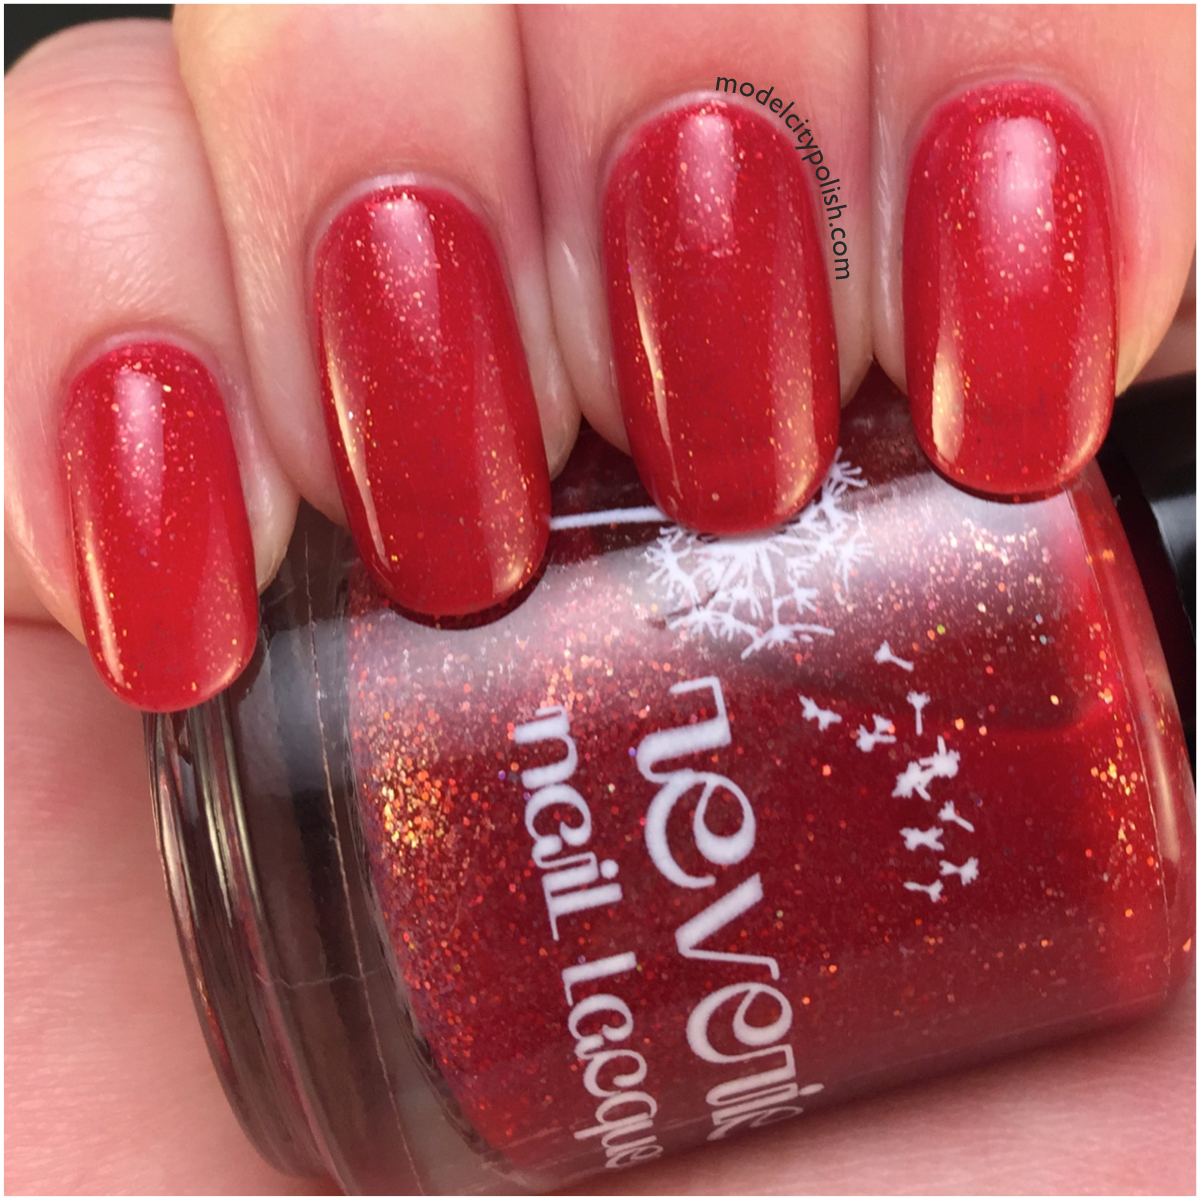 Reverie Nail Lacquer Winter Collection 2014 Part 1